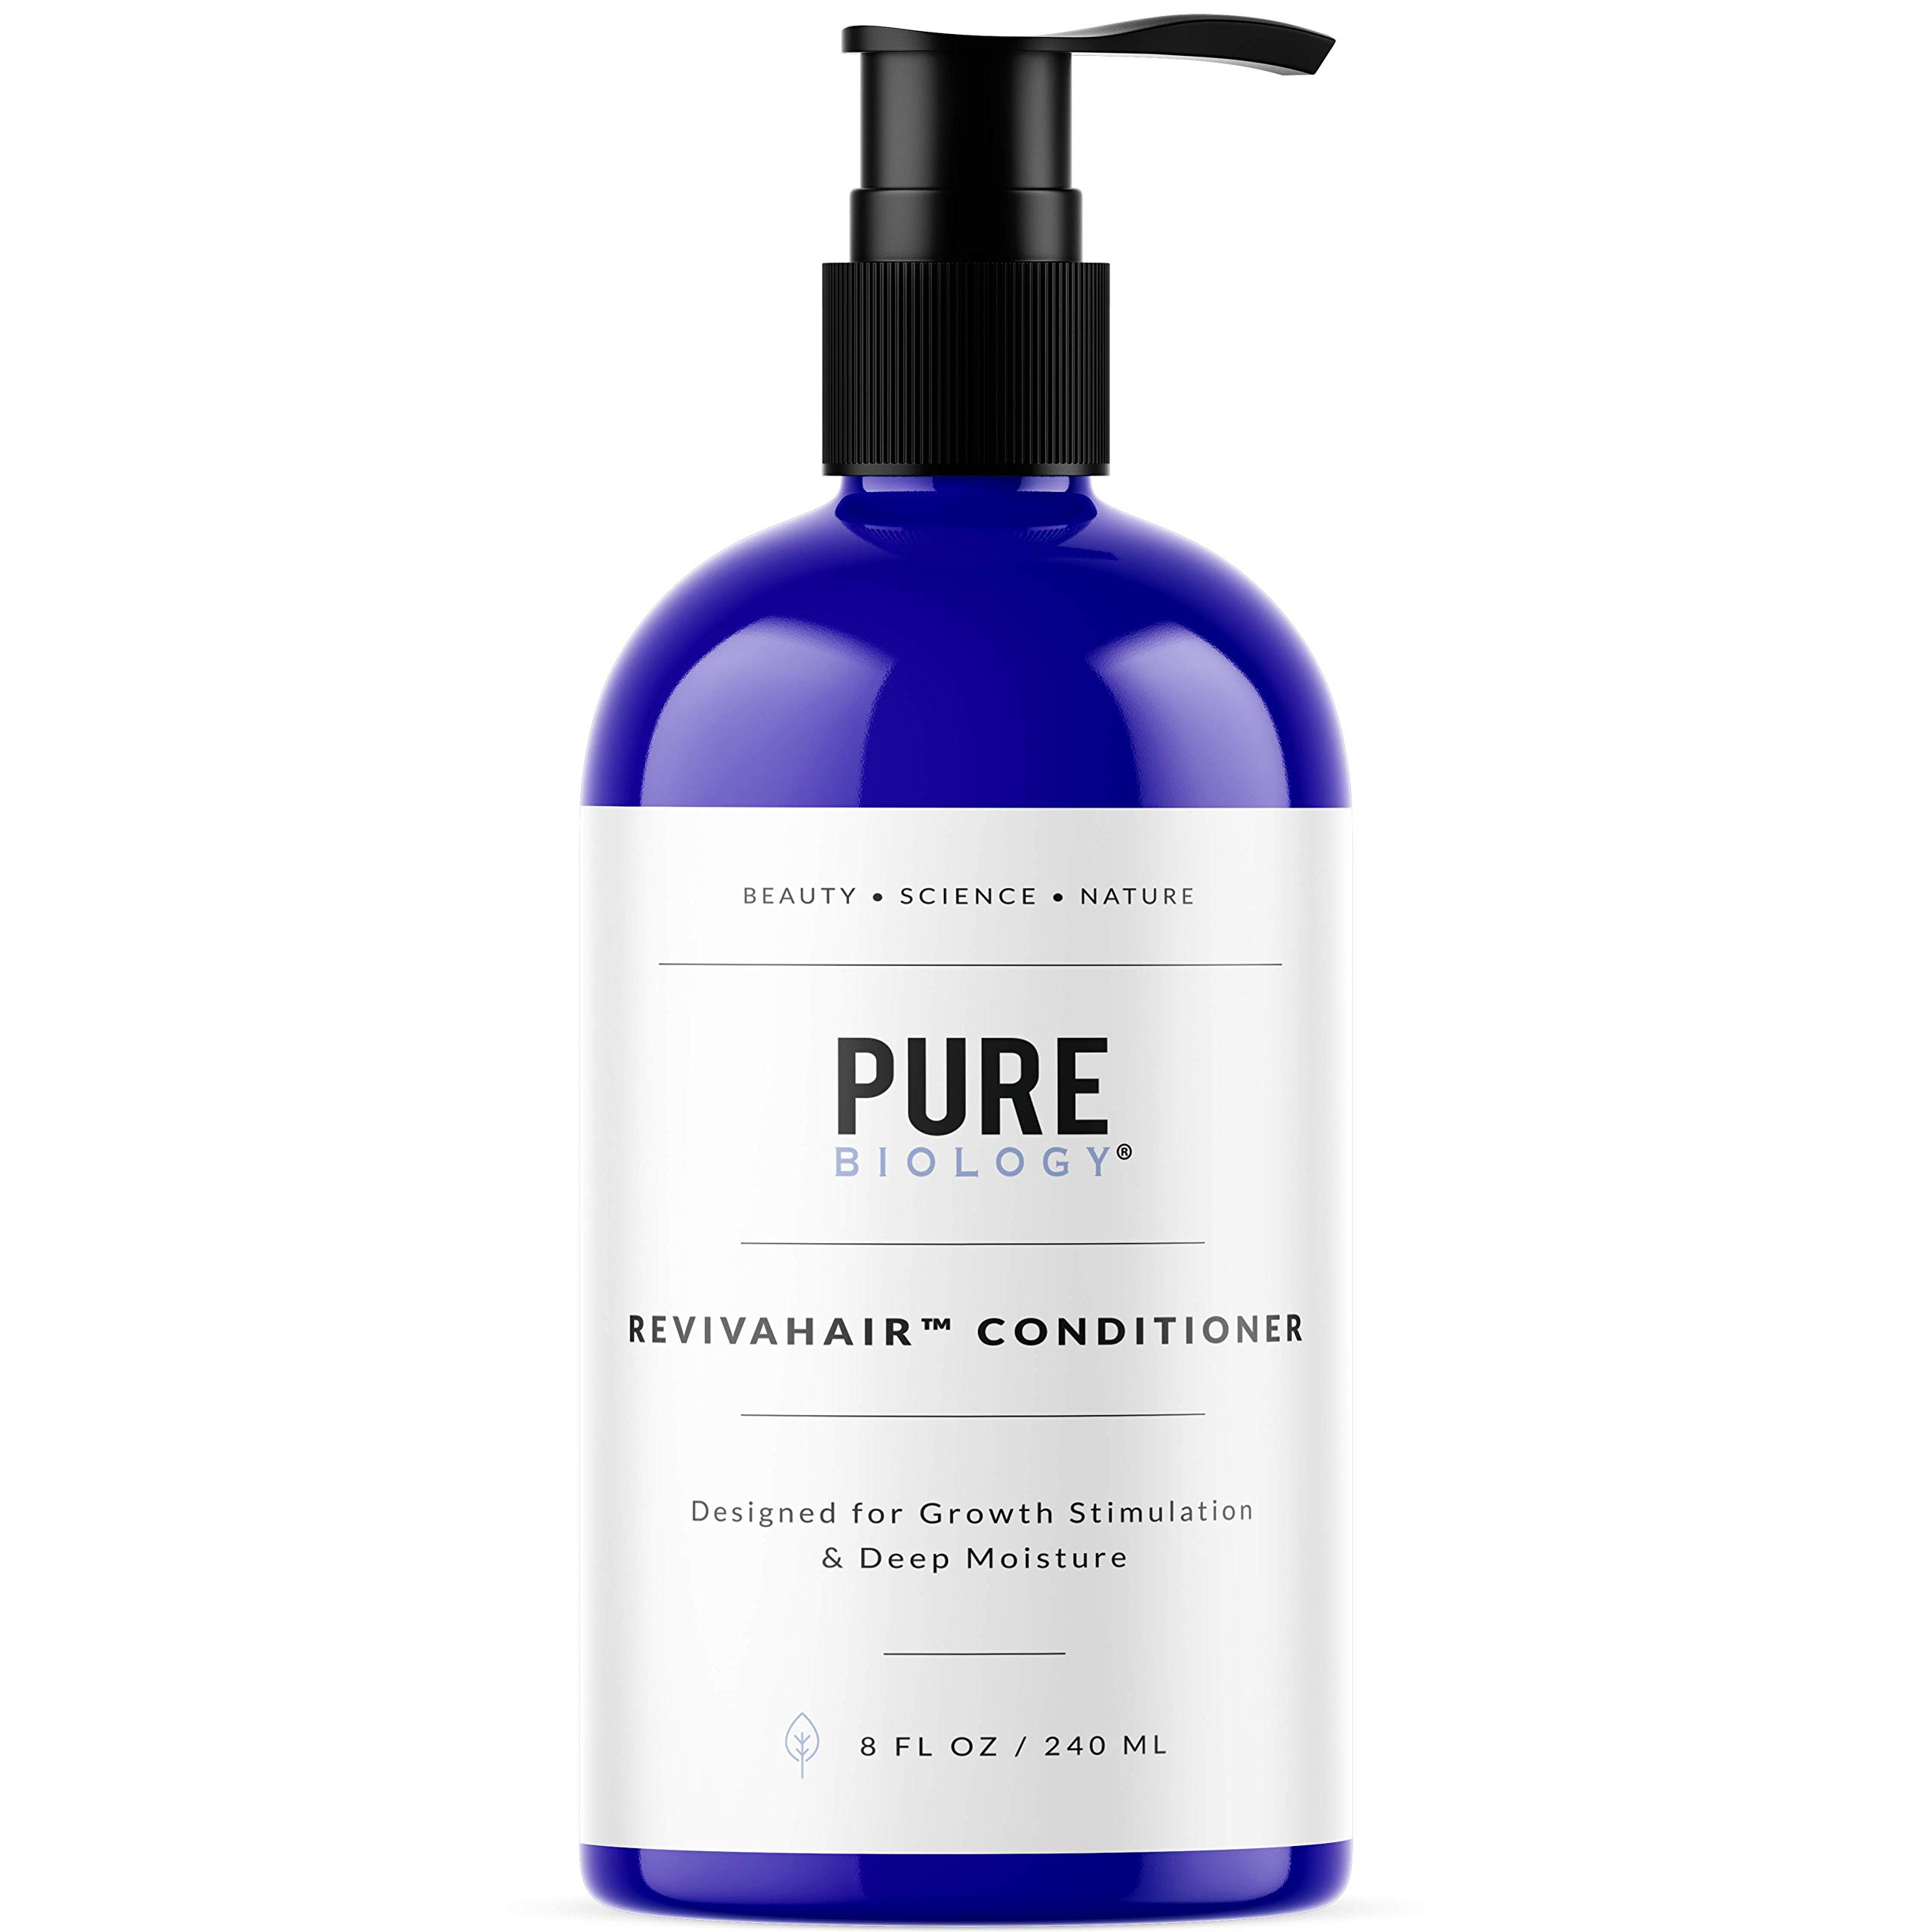 Pure Biology RevivaHair Conditioner with Procapil For Growth Stimulation & Deep Moisture, 8fl oz/240ml by Pure Biology